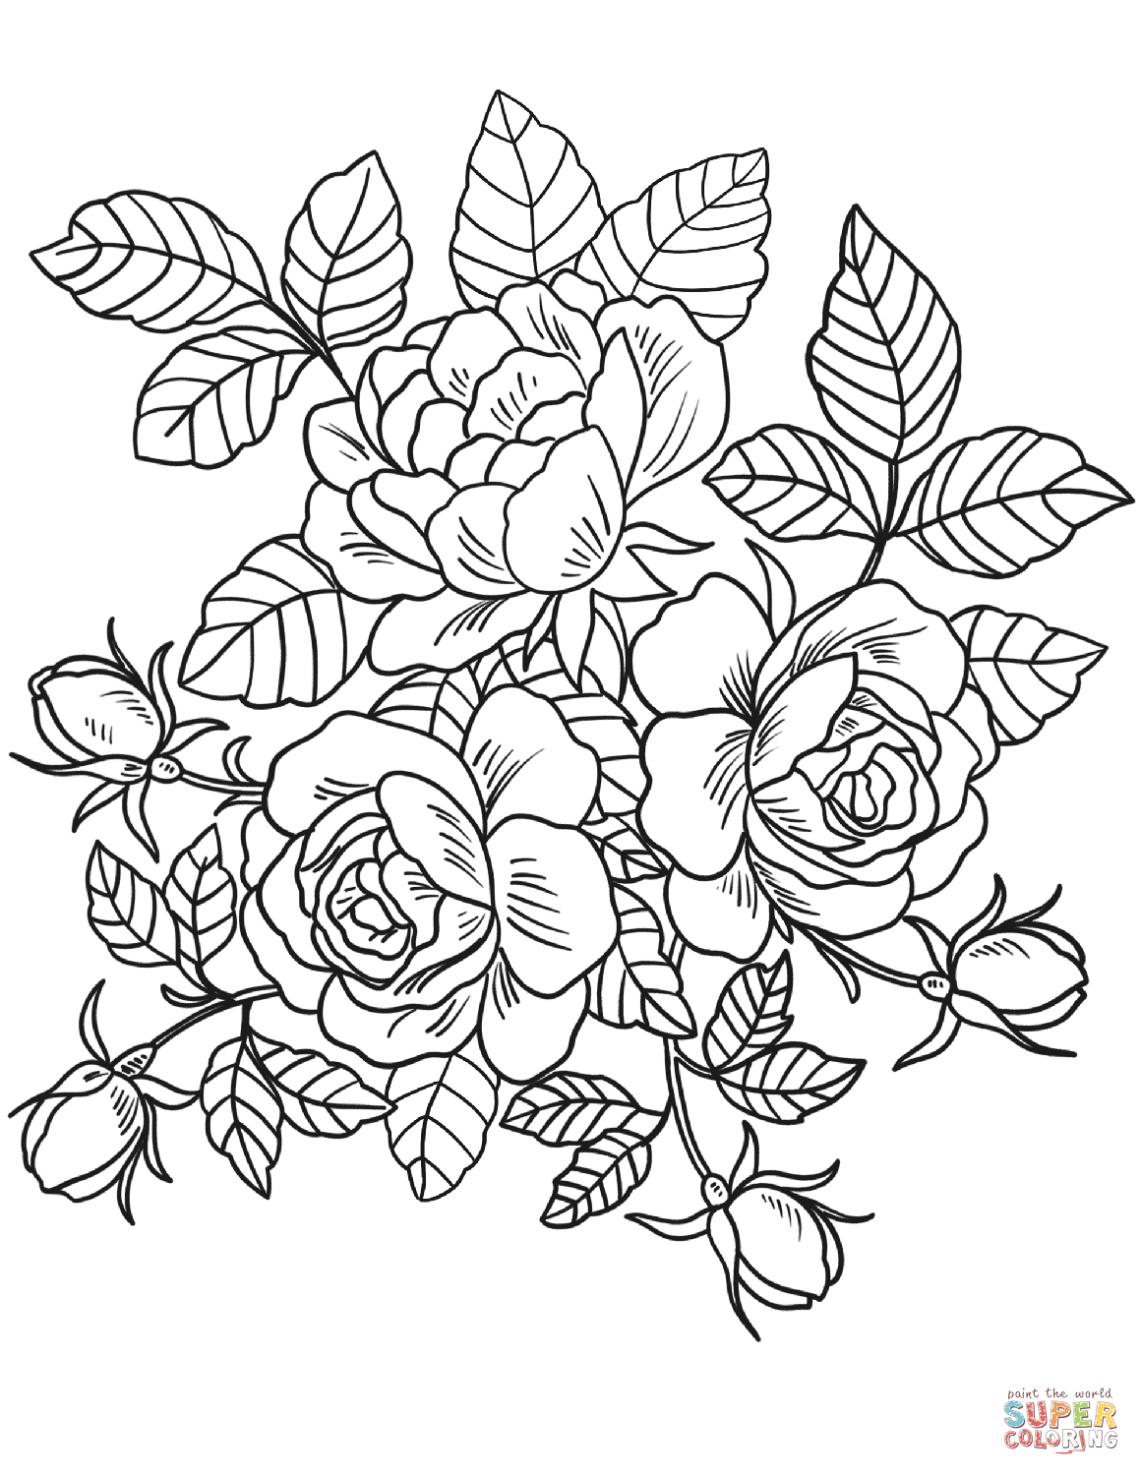 Roses Flowers coloring page | Free Printable Coloring Pages | free printable flower coloring pages